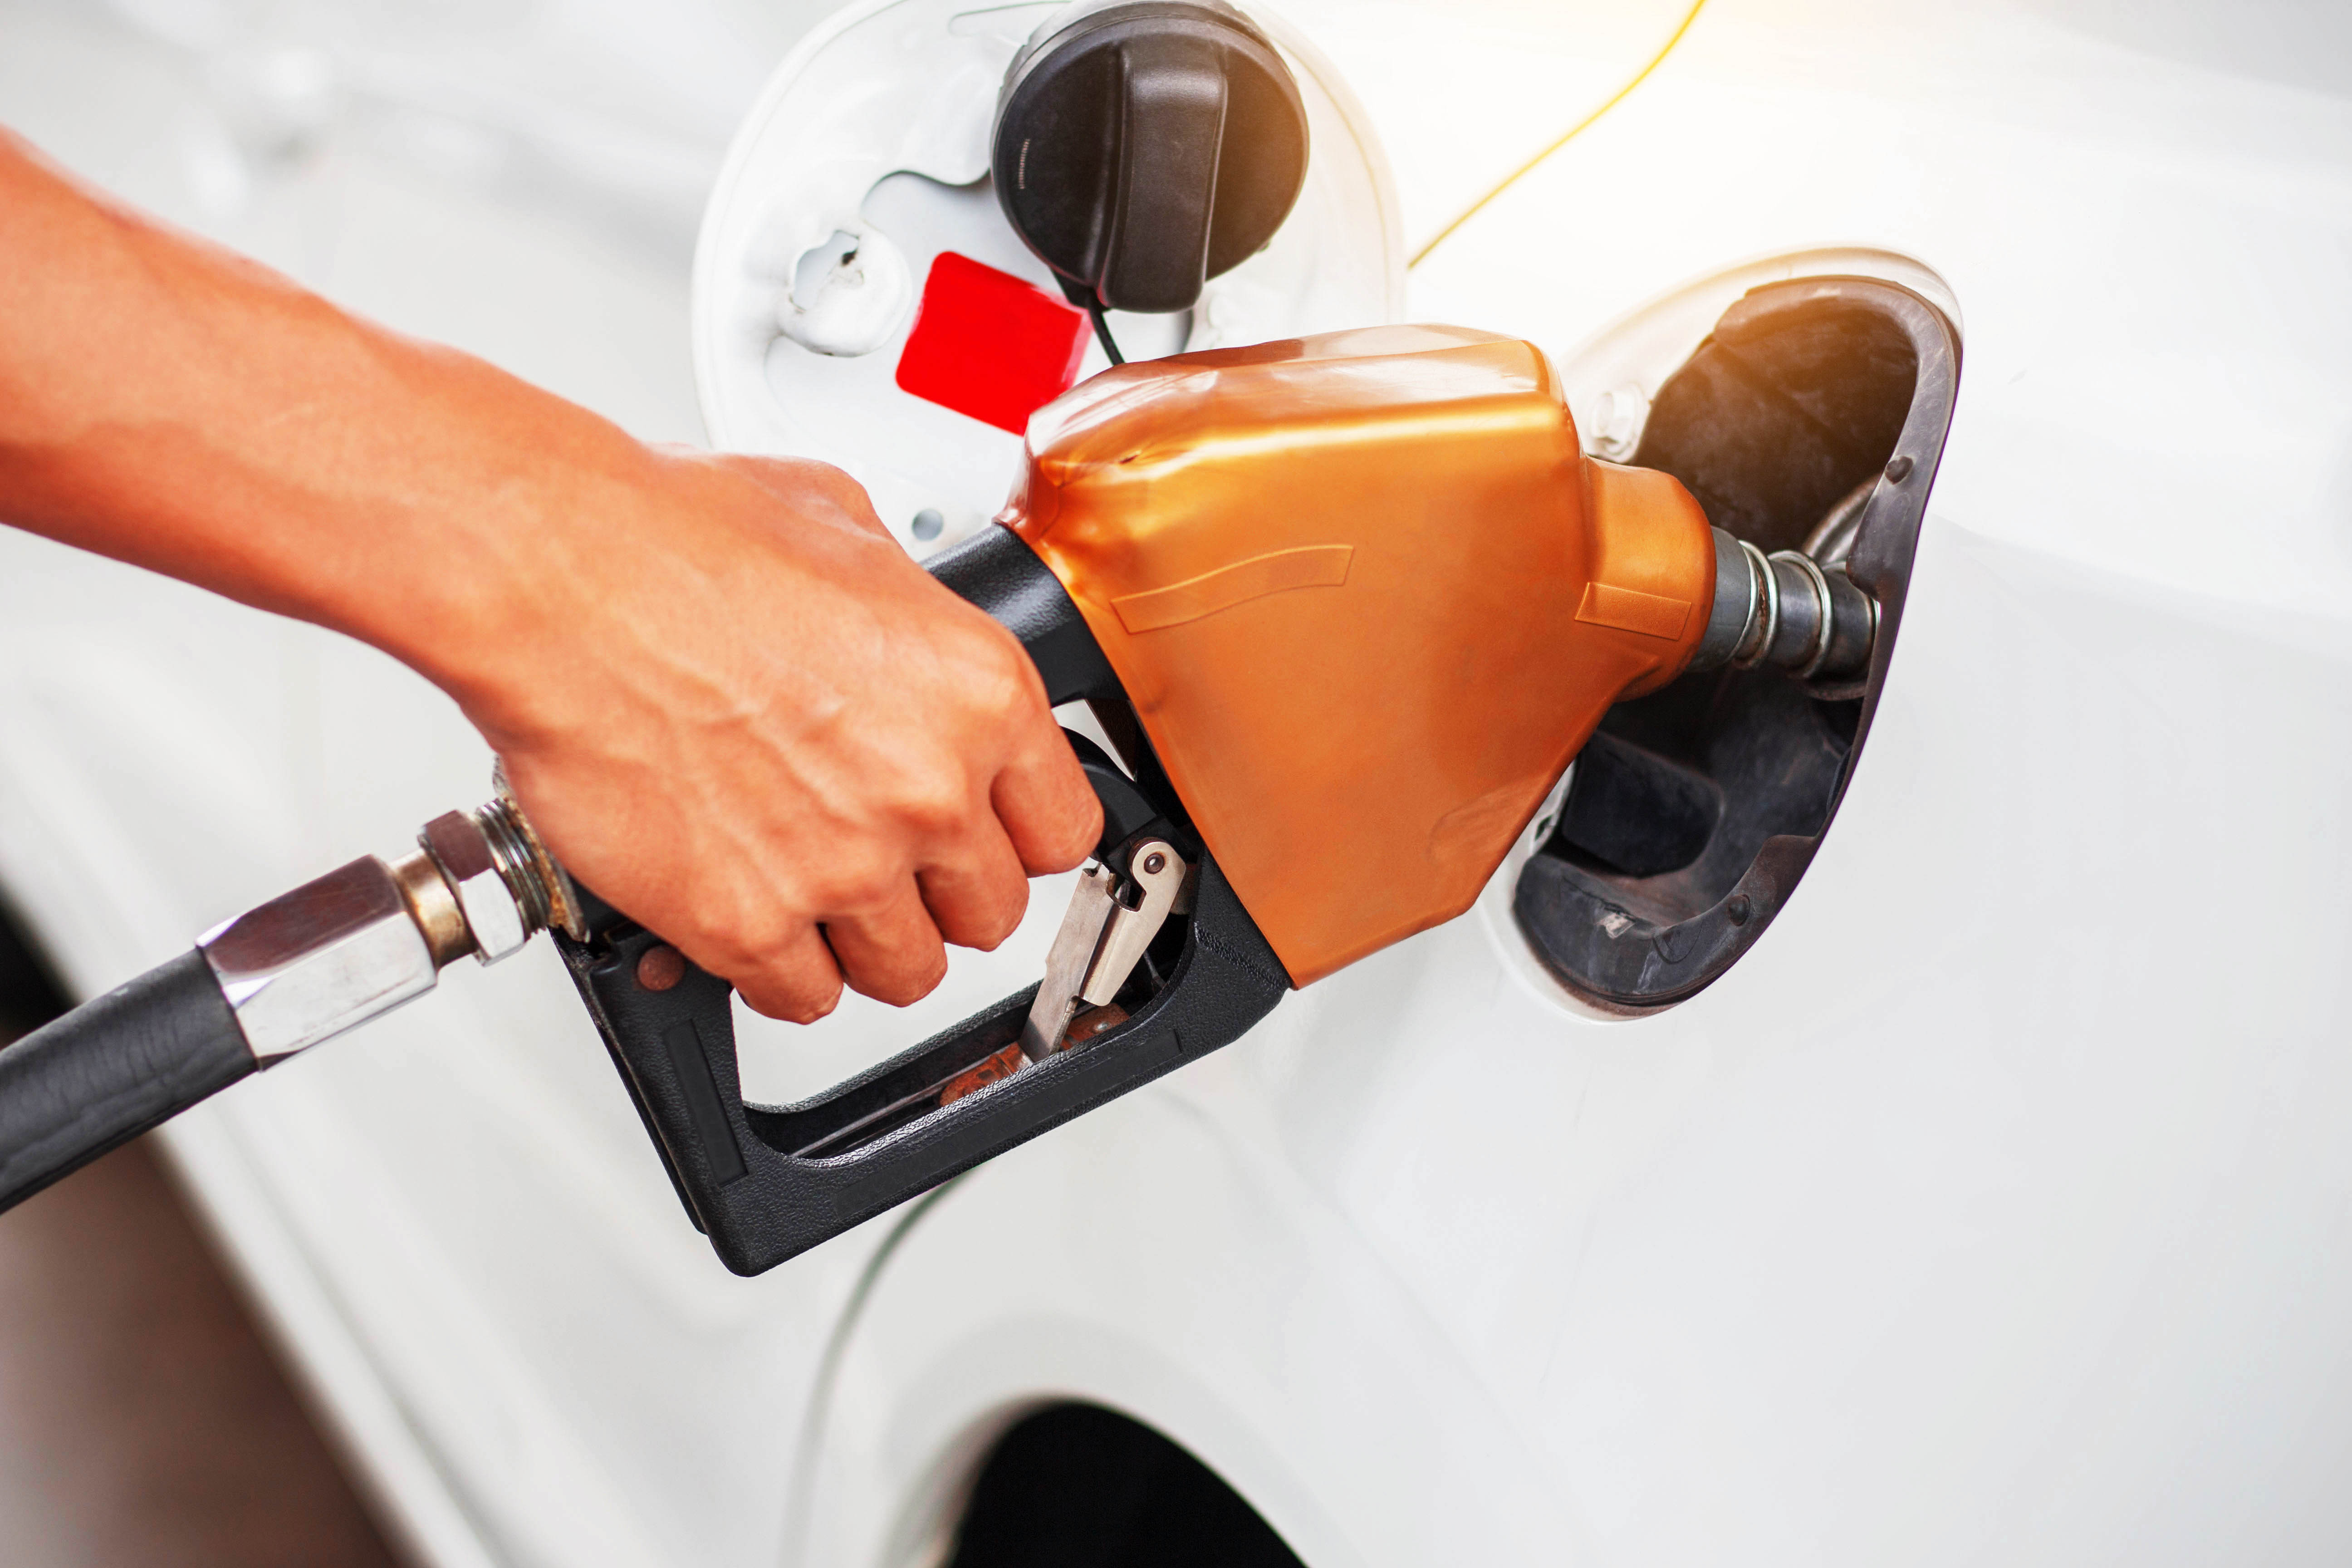 handle-fuel-in-the-car-P8EXEVP